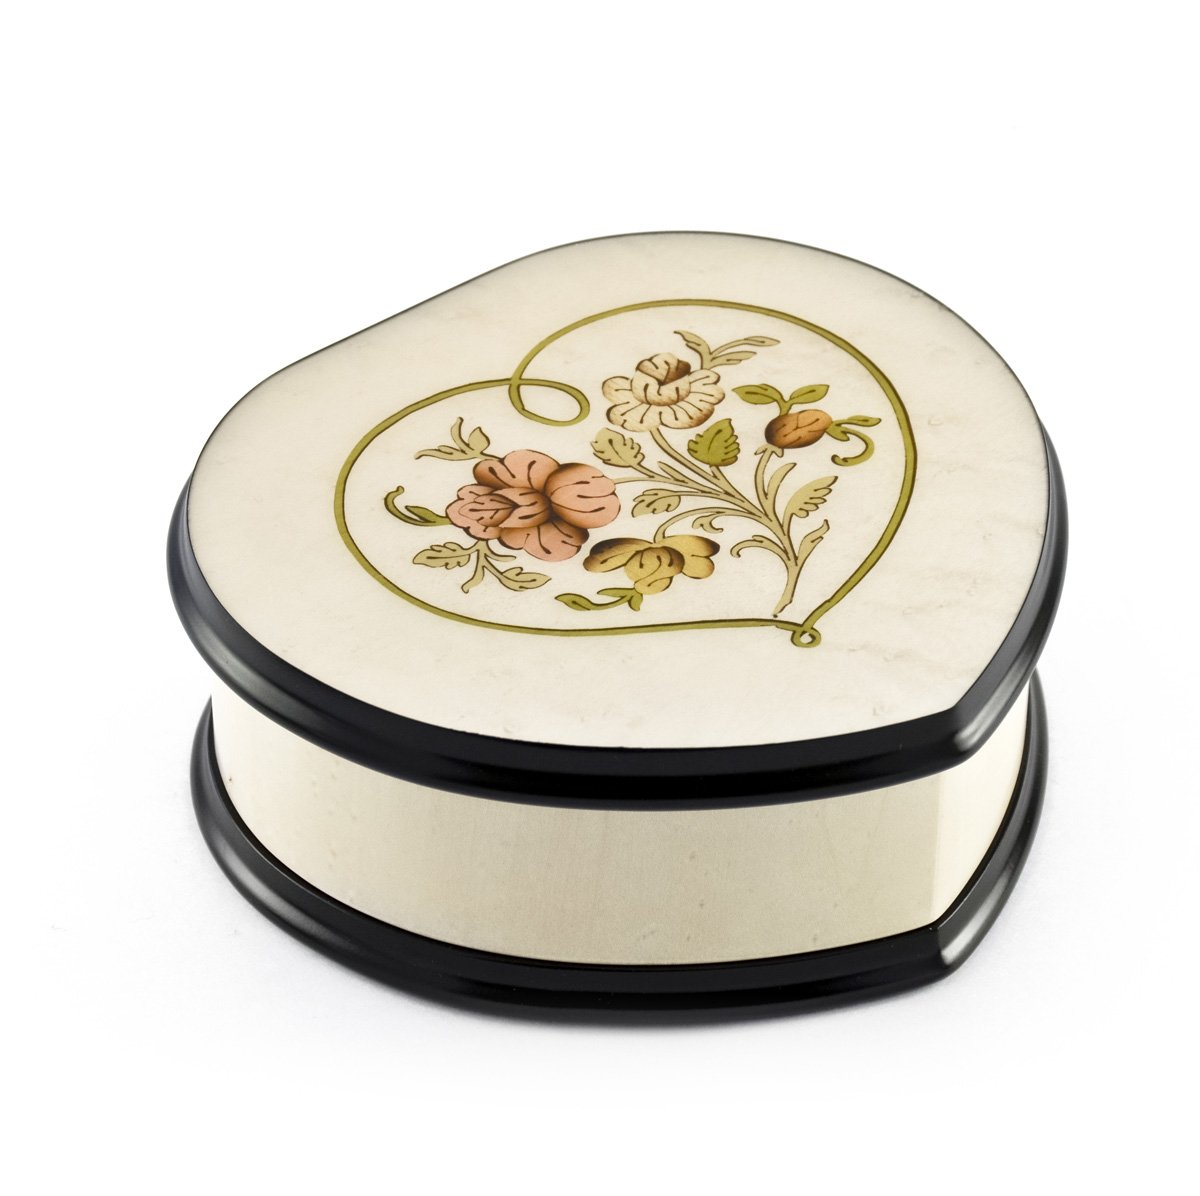 Ivory Stain Heart Shaped Music Box with Floral Centered in Heart Outline Inlay - Over 400 Song Choices - Hey Jude (The Beatles)